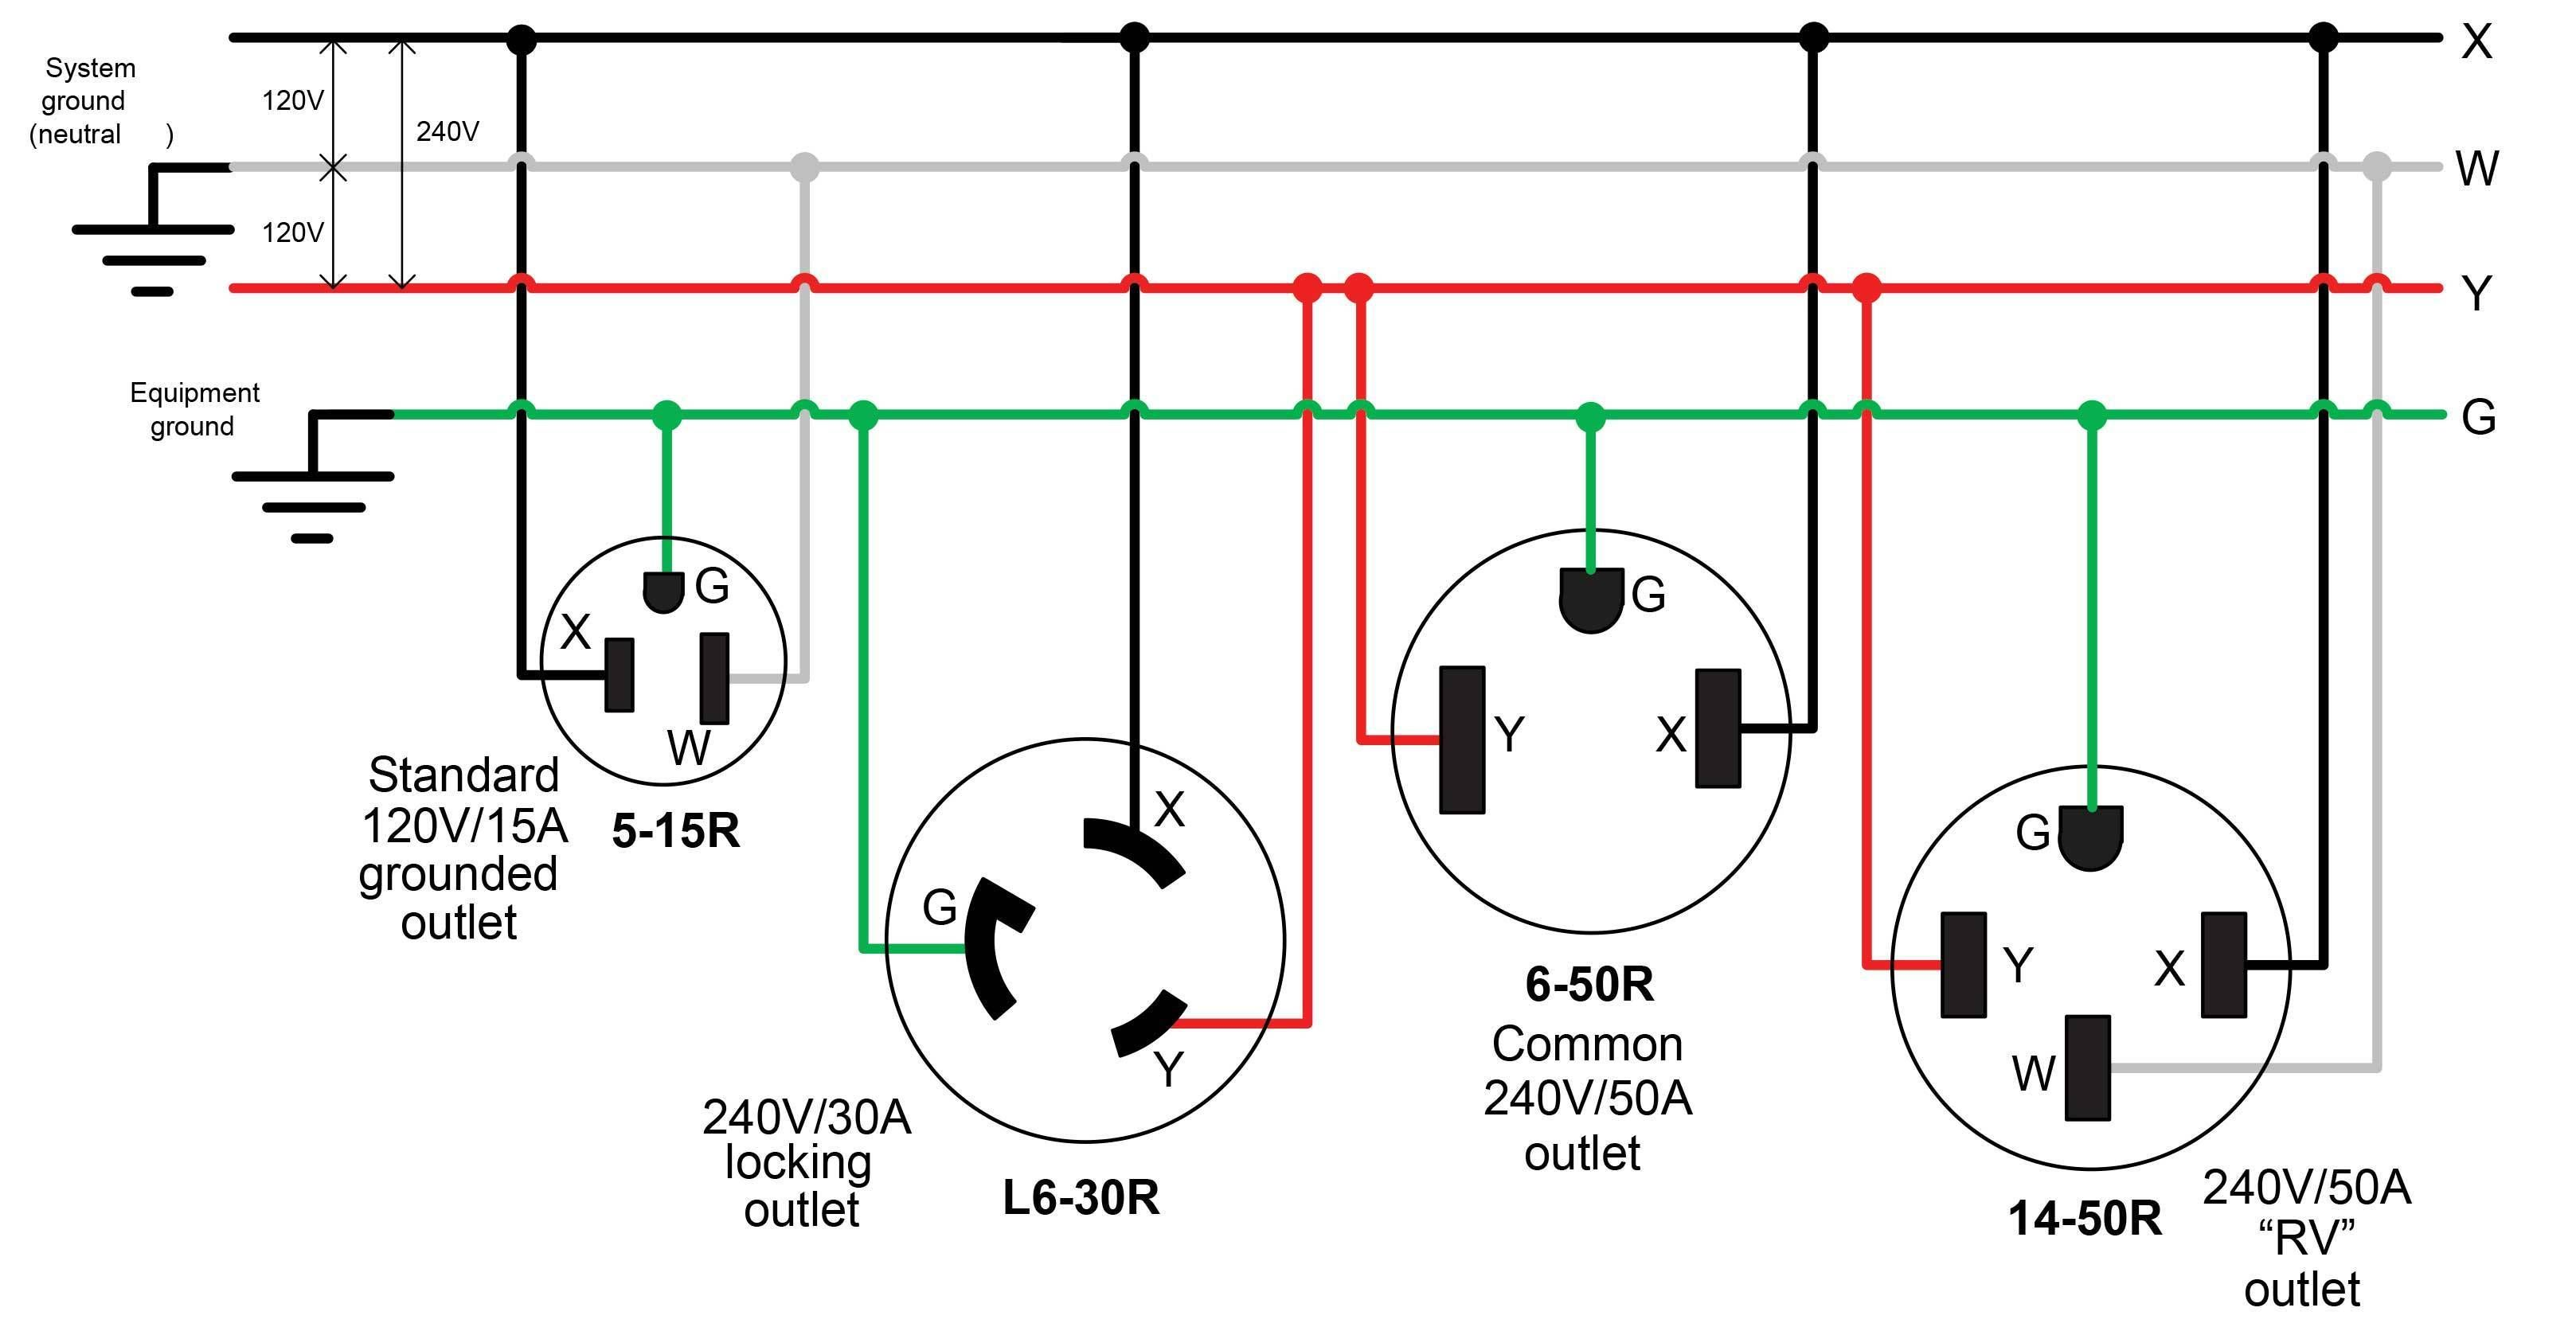 30 amp 250 volt outlet diagram wiring diagram user wiring multiple outlets diagram on 120 volt 30 amp circuit wiring [ 3235 x 1672 Pixel ]